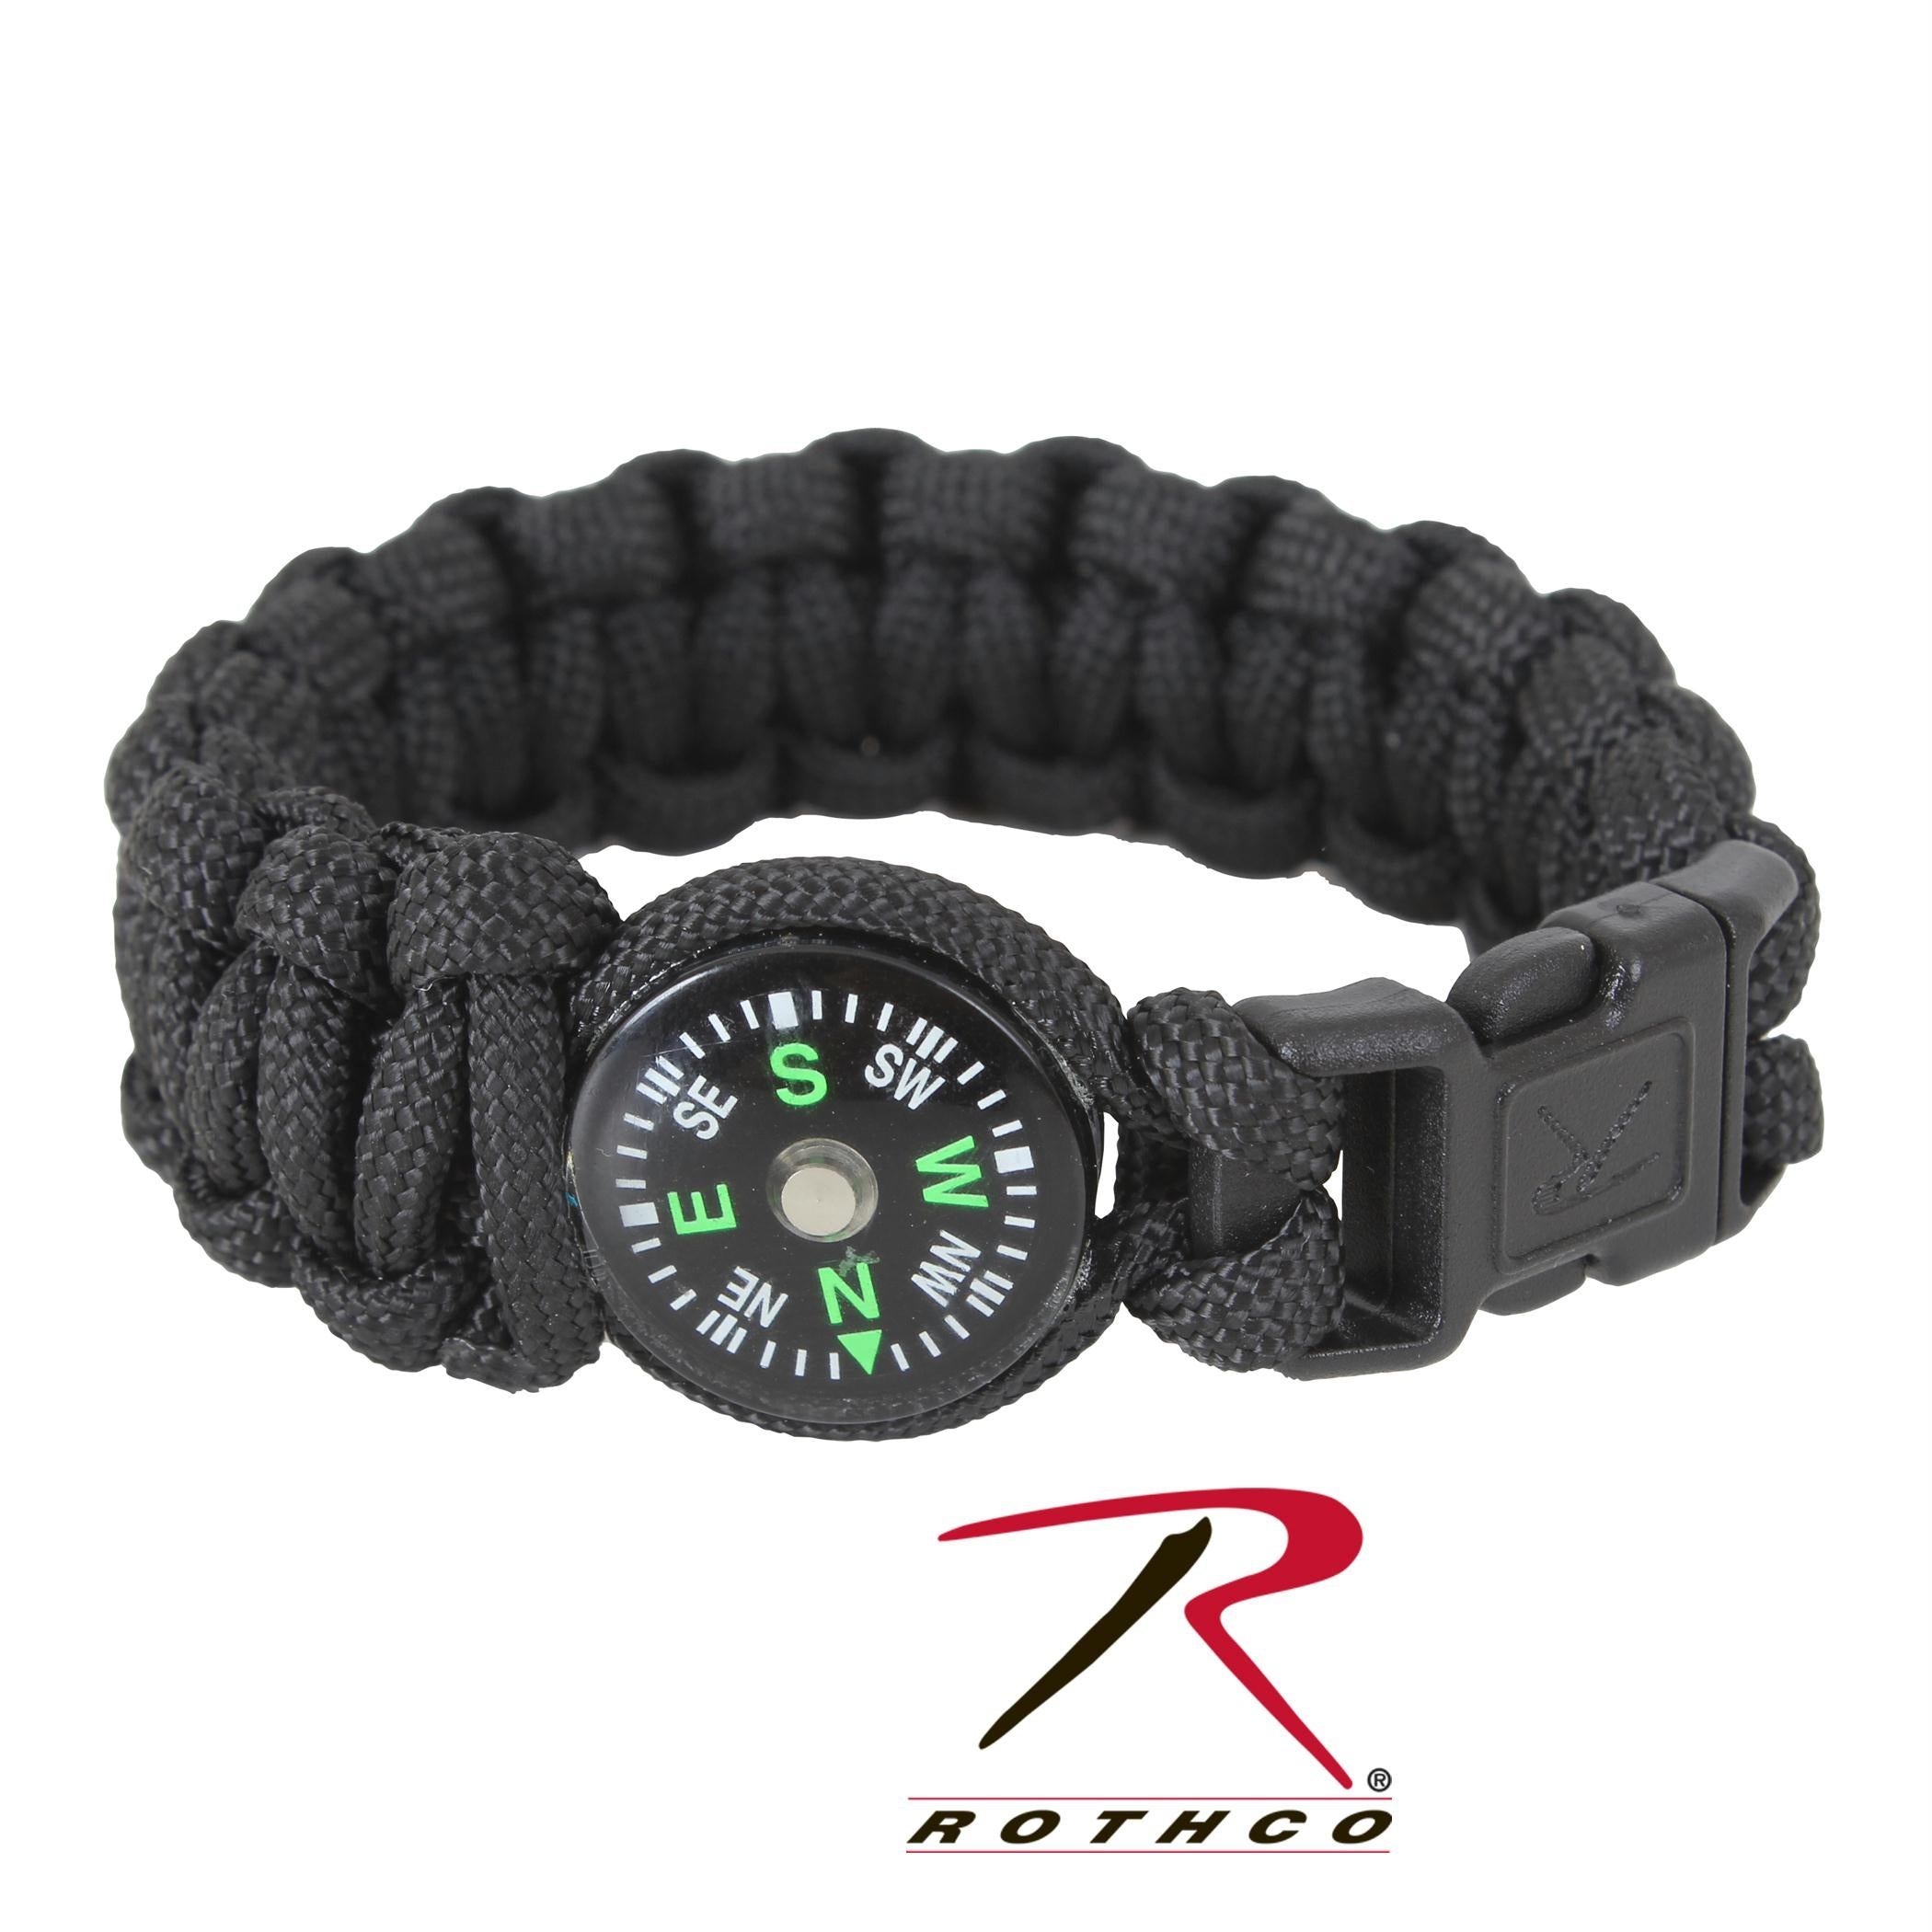 Rothco Paracord Compass Bracelet - Black / 7 Inches